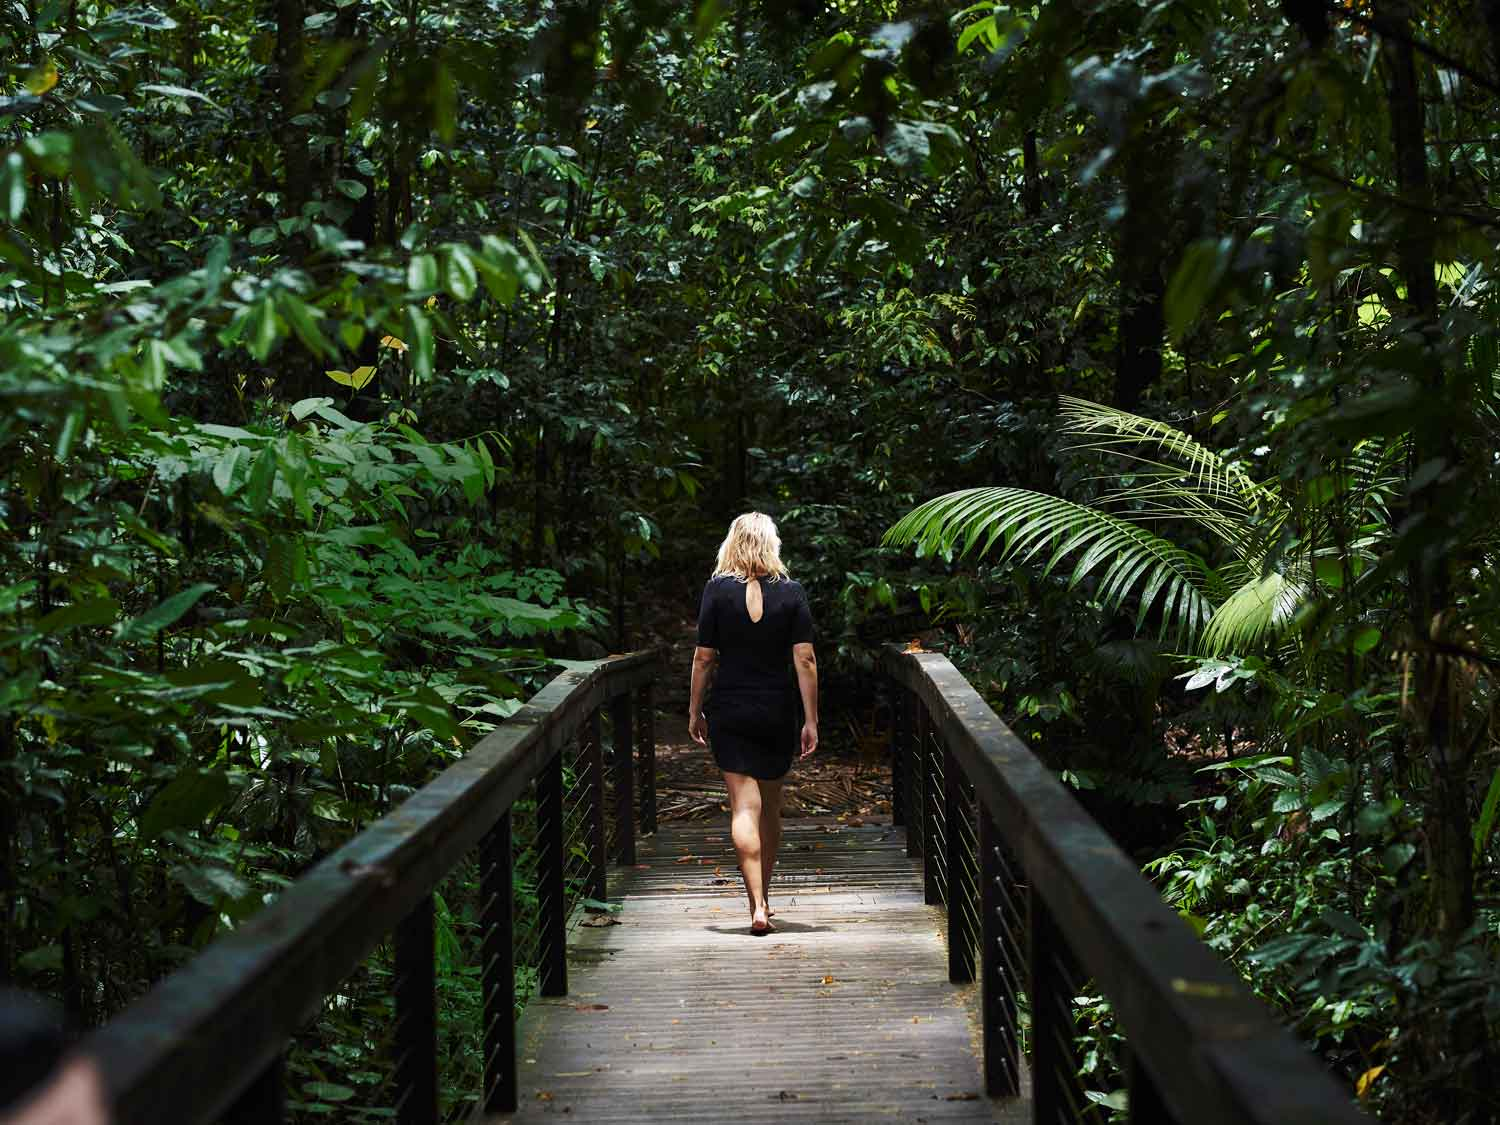 Daintree-Ecolodge_Lifestyle_Simon-Shiff_0-56_FULLSIZE-JPEG-300DPI-ADOBE-RGB-5MB.jpg